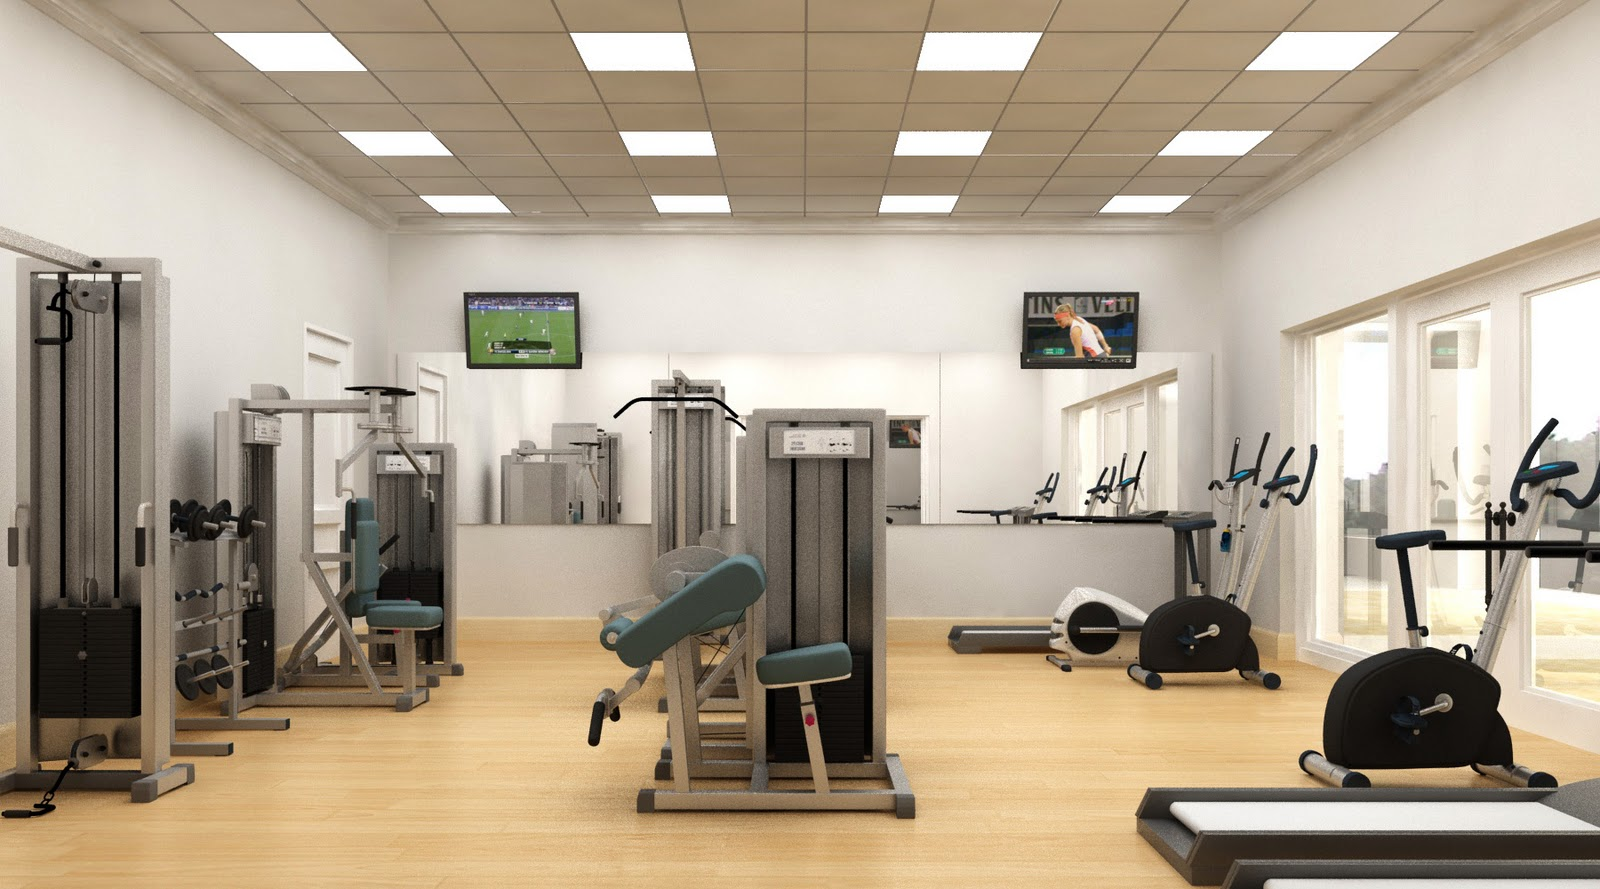 garage boxing gym ideas - 3D rendering Gym & Fitness area